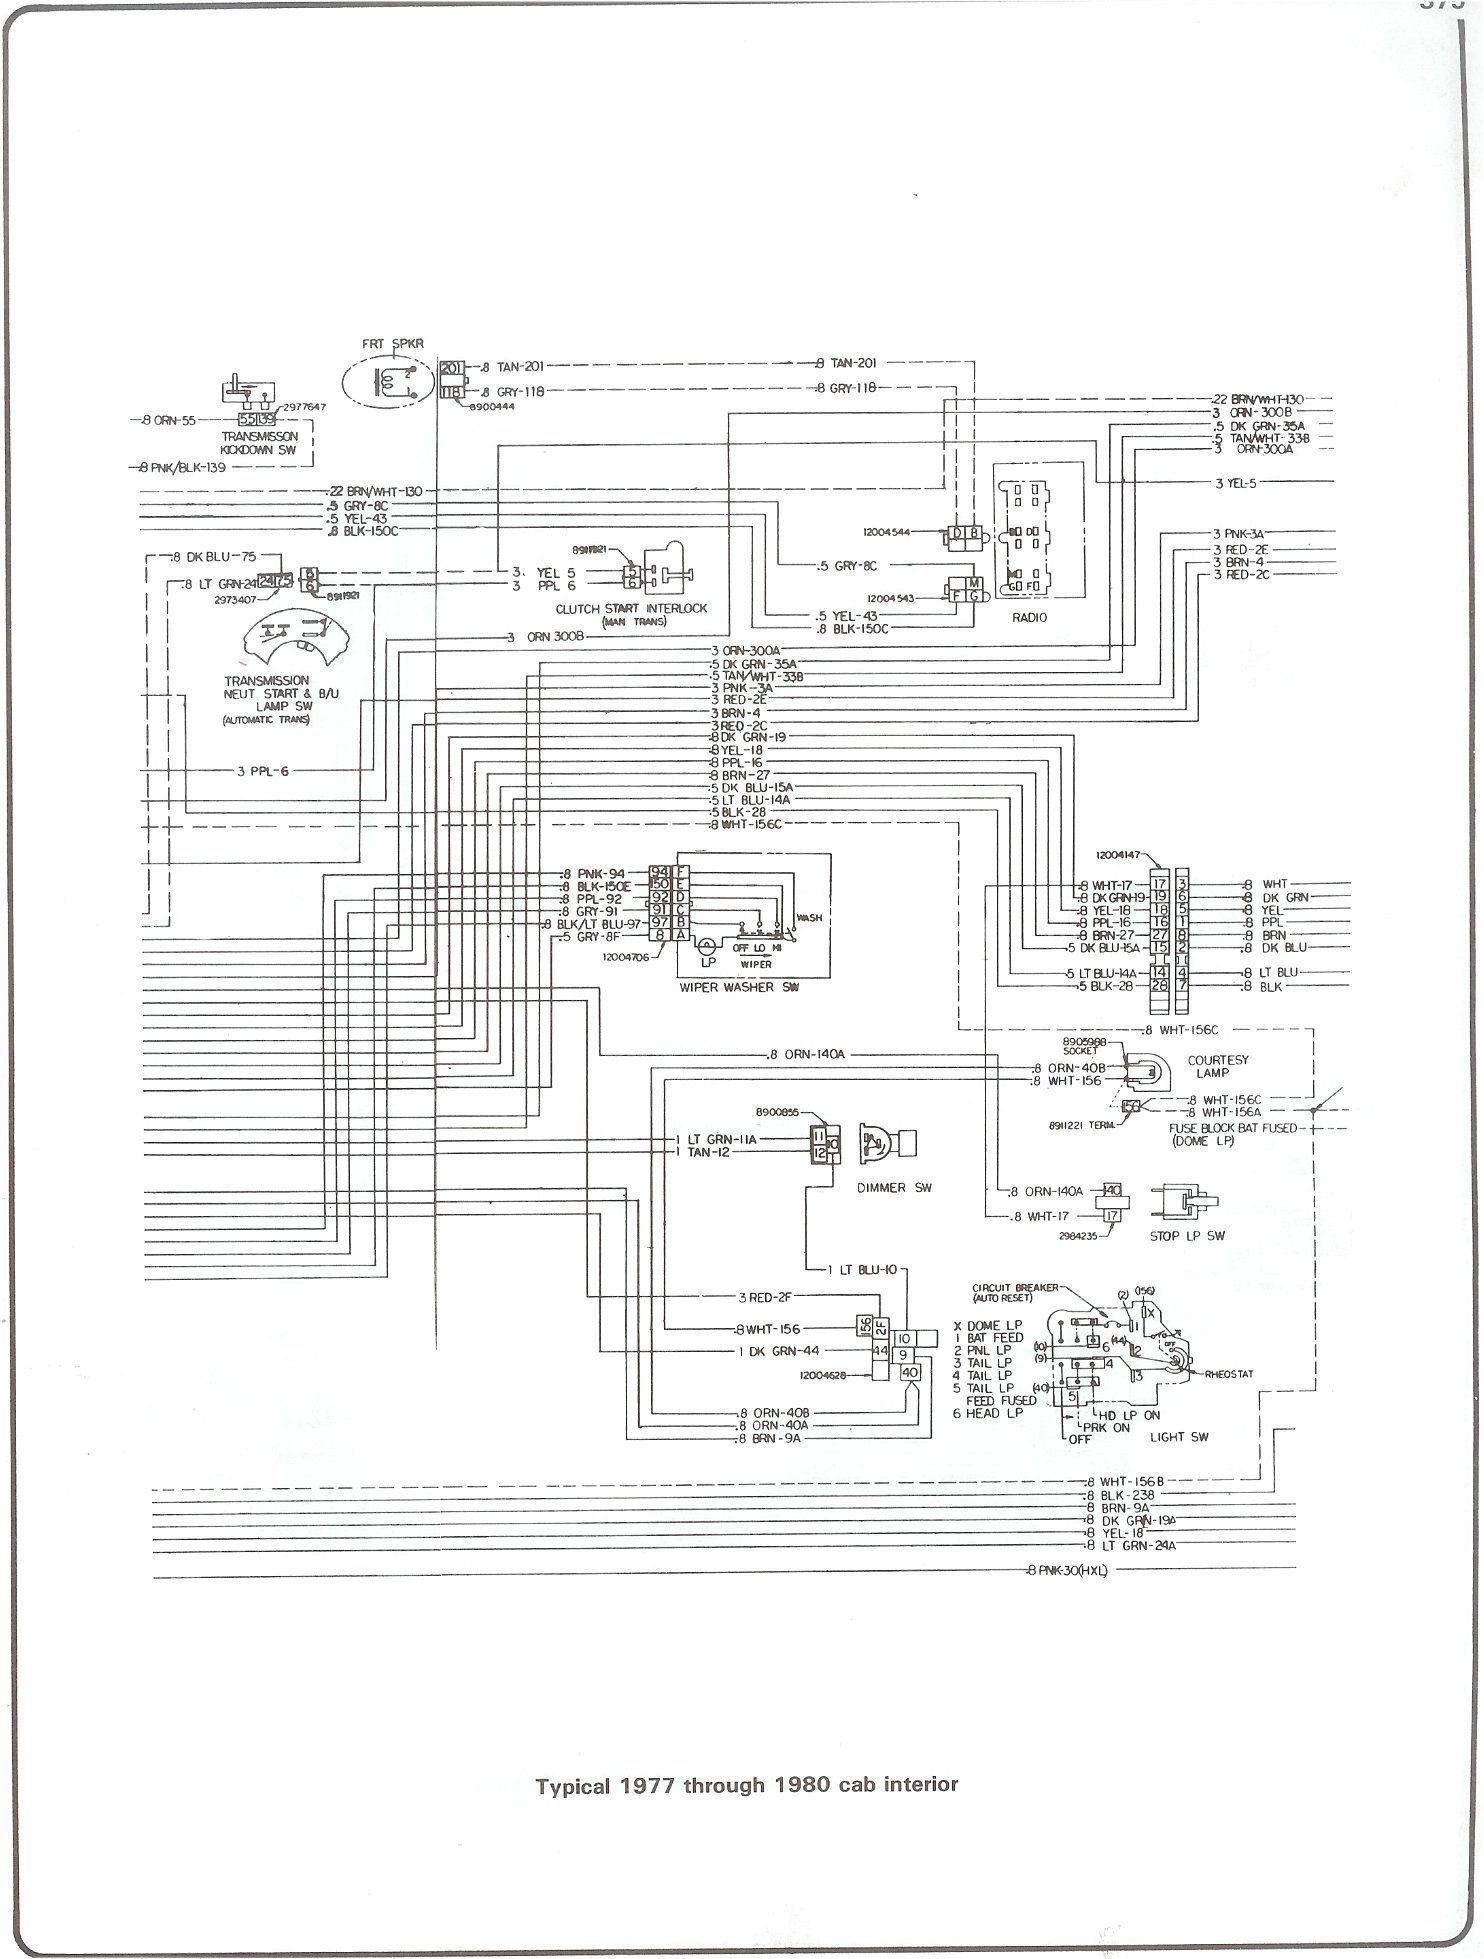 1986 Chevy K10 Dash Board Wiring Diagram Free Download Wiring Diagrams besides Ford F 150 Cam Sensor Location likewise 1972 Cadillac Eldorado Wiring Diagram besides 79 Chevy Malibu Wiring Diagram together with 85 Pontiac Radio Wiring Diagram. on chevrolet v8 trucks 1981 1987